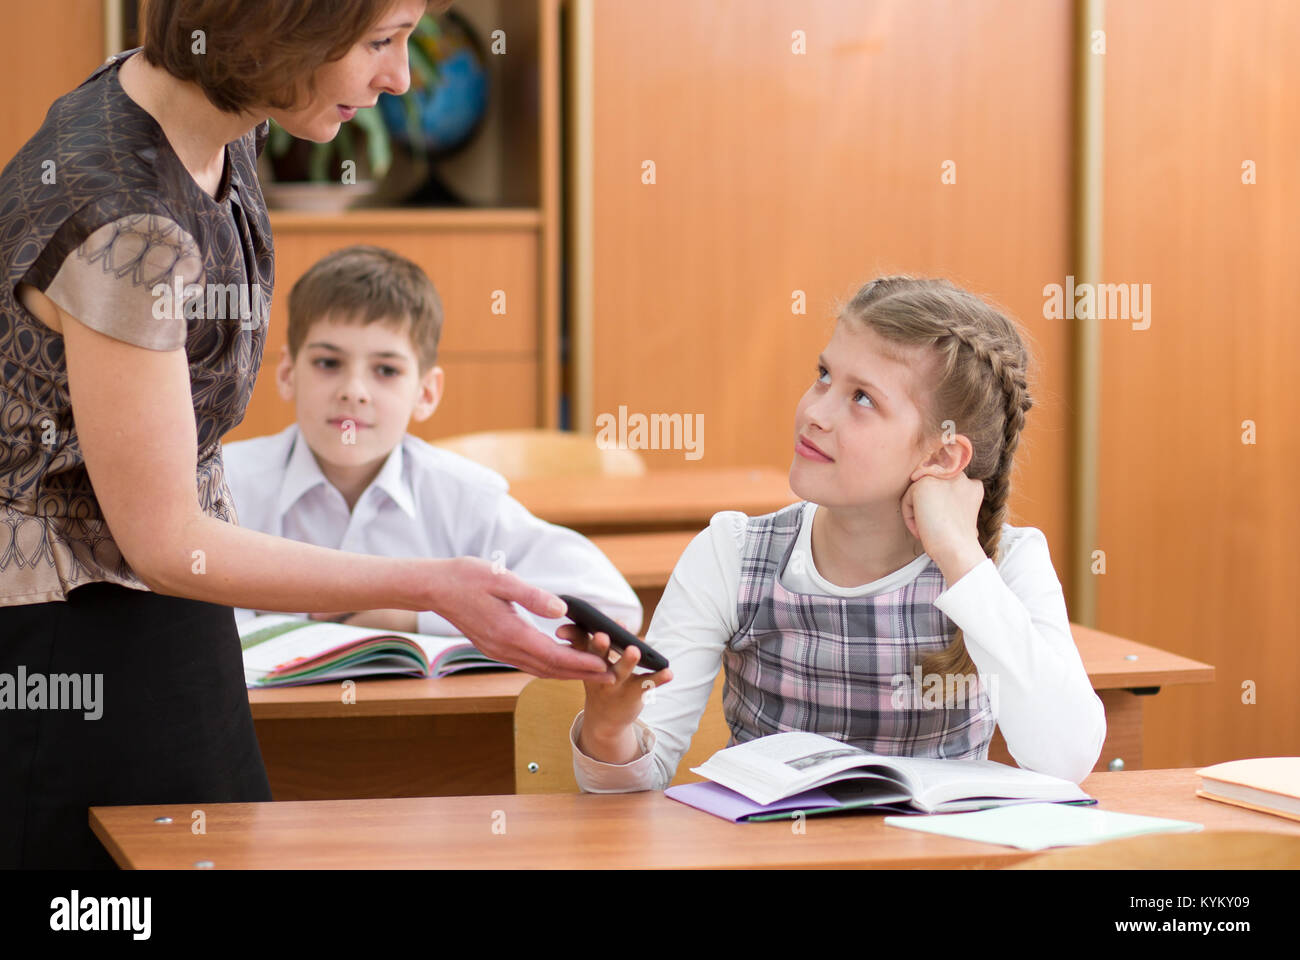 Female teacher confiscating schoolkid's mobile phone at lesson - Stock Image